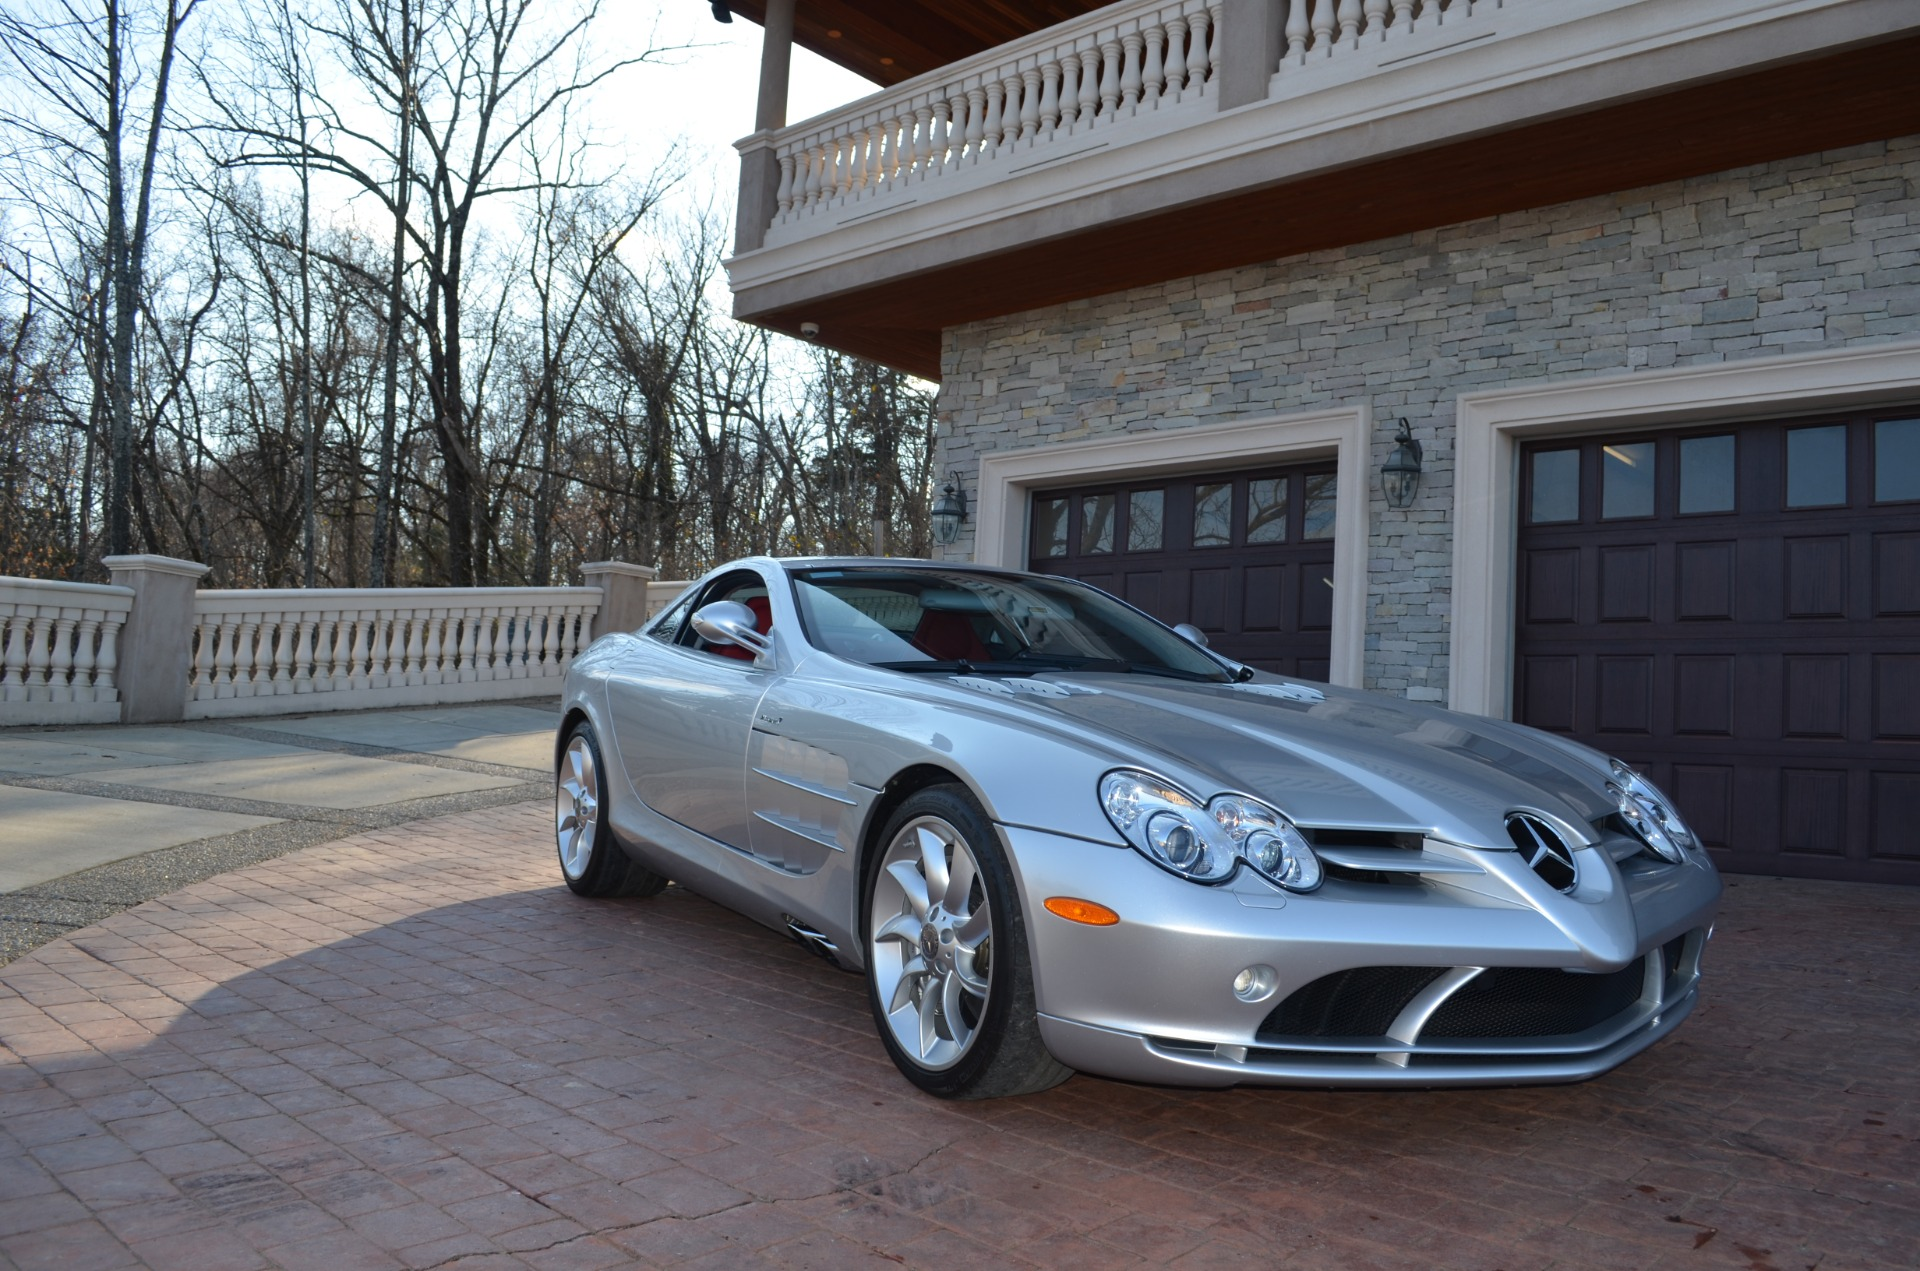 2006 mercedes benz slr slr mclaren stock gc mir116 for for Mercedes benz slr mclaren price